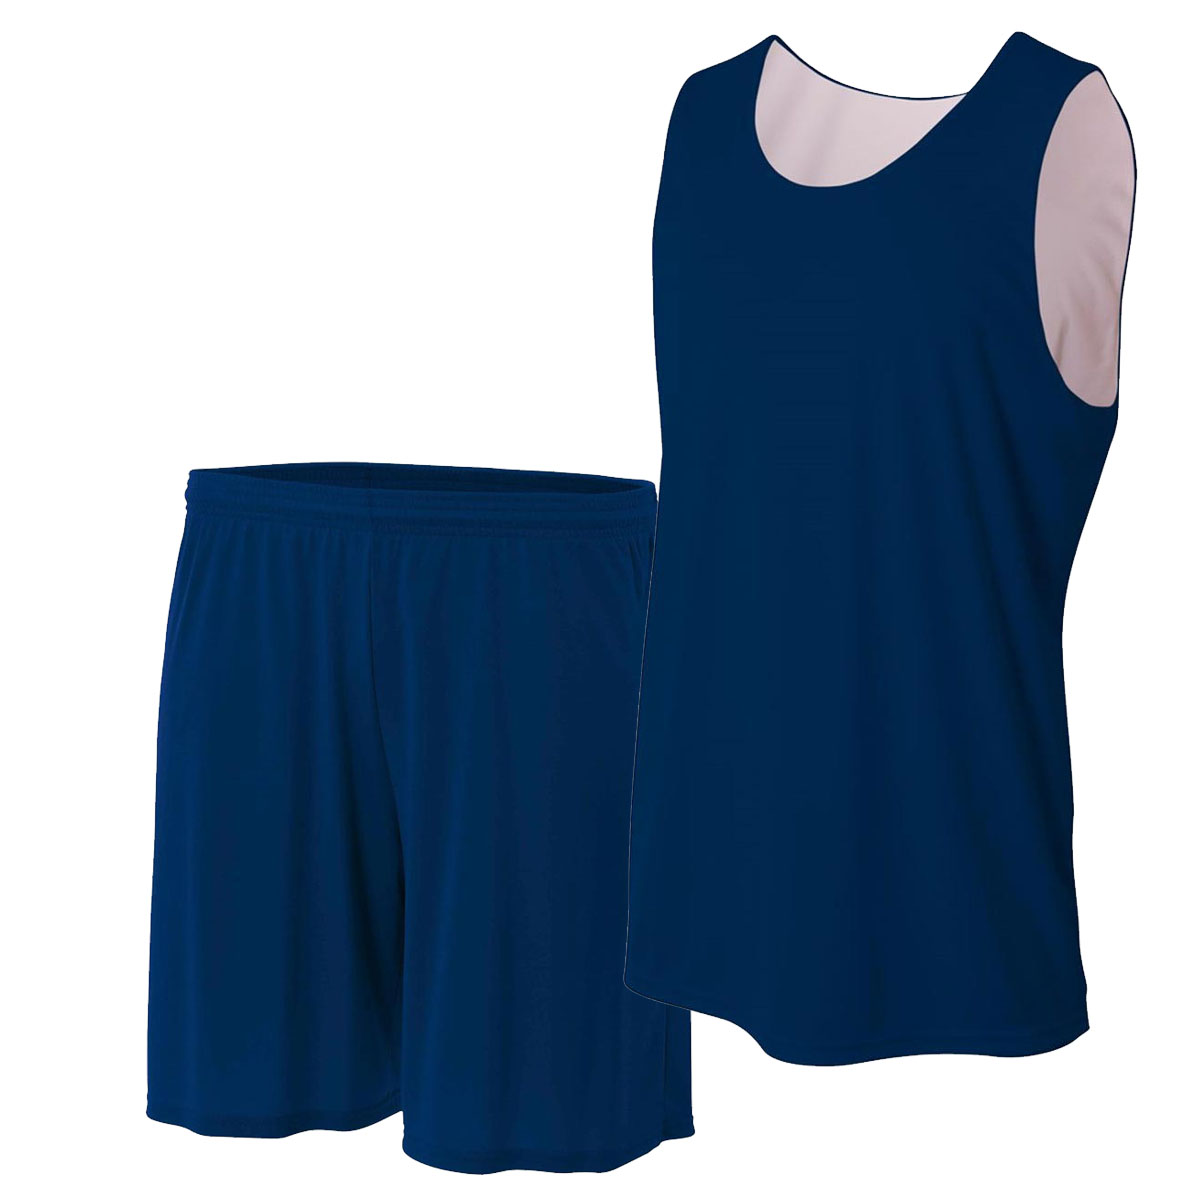 Reversible Basketball Uniforms Manufacturers in Jalandhar in Algeria